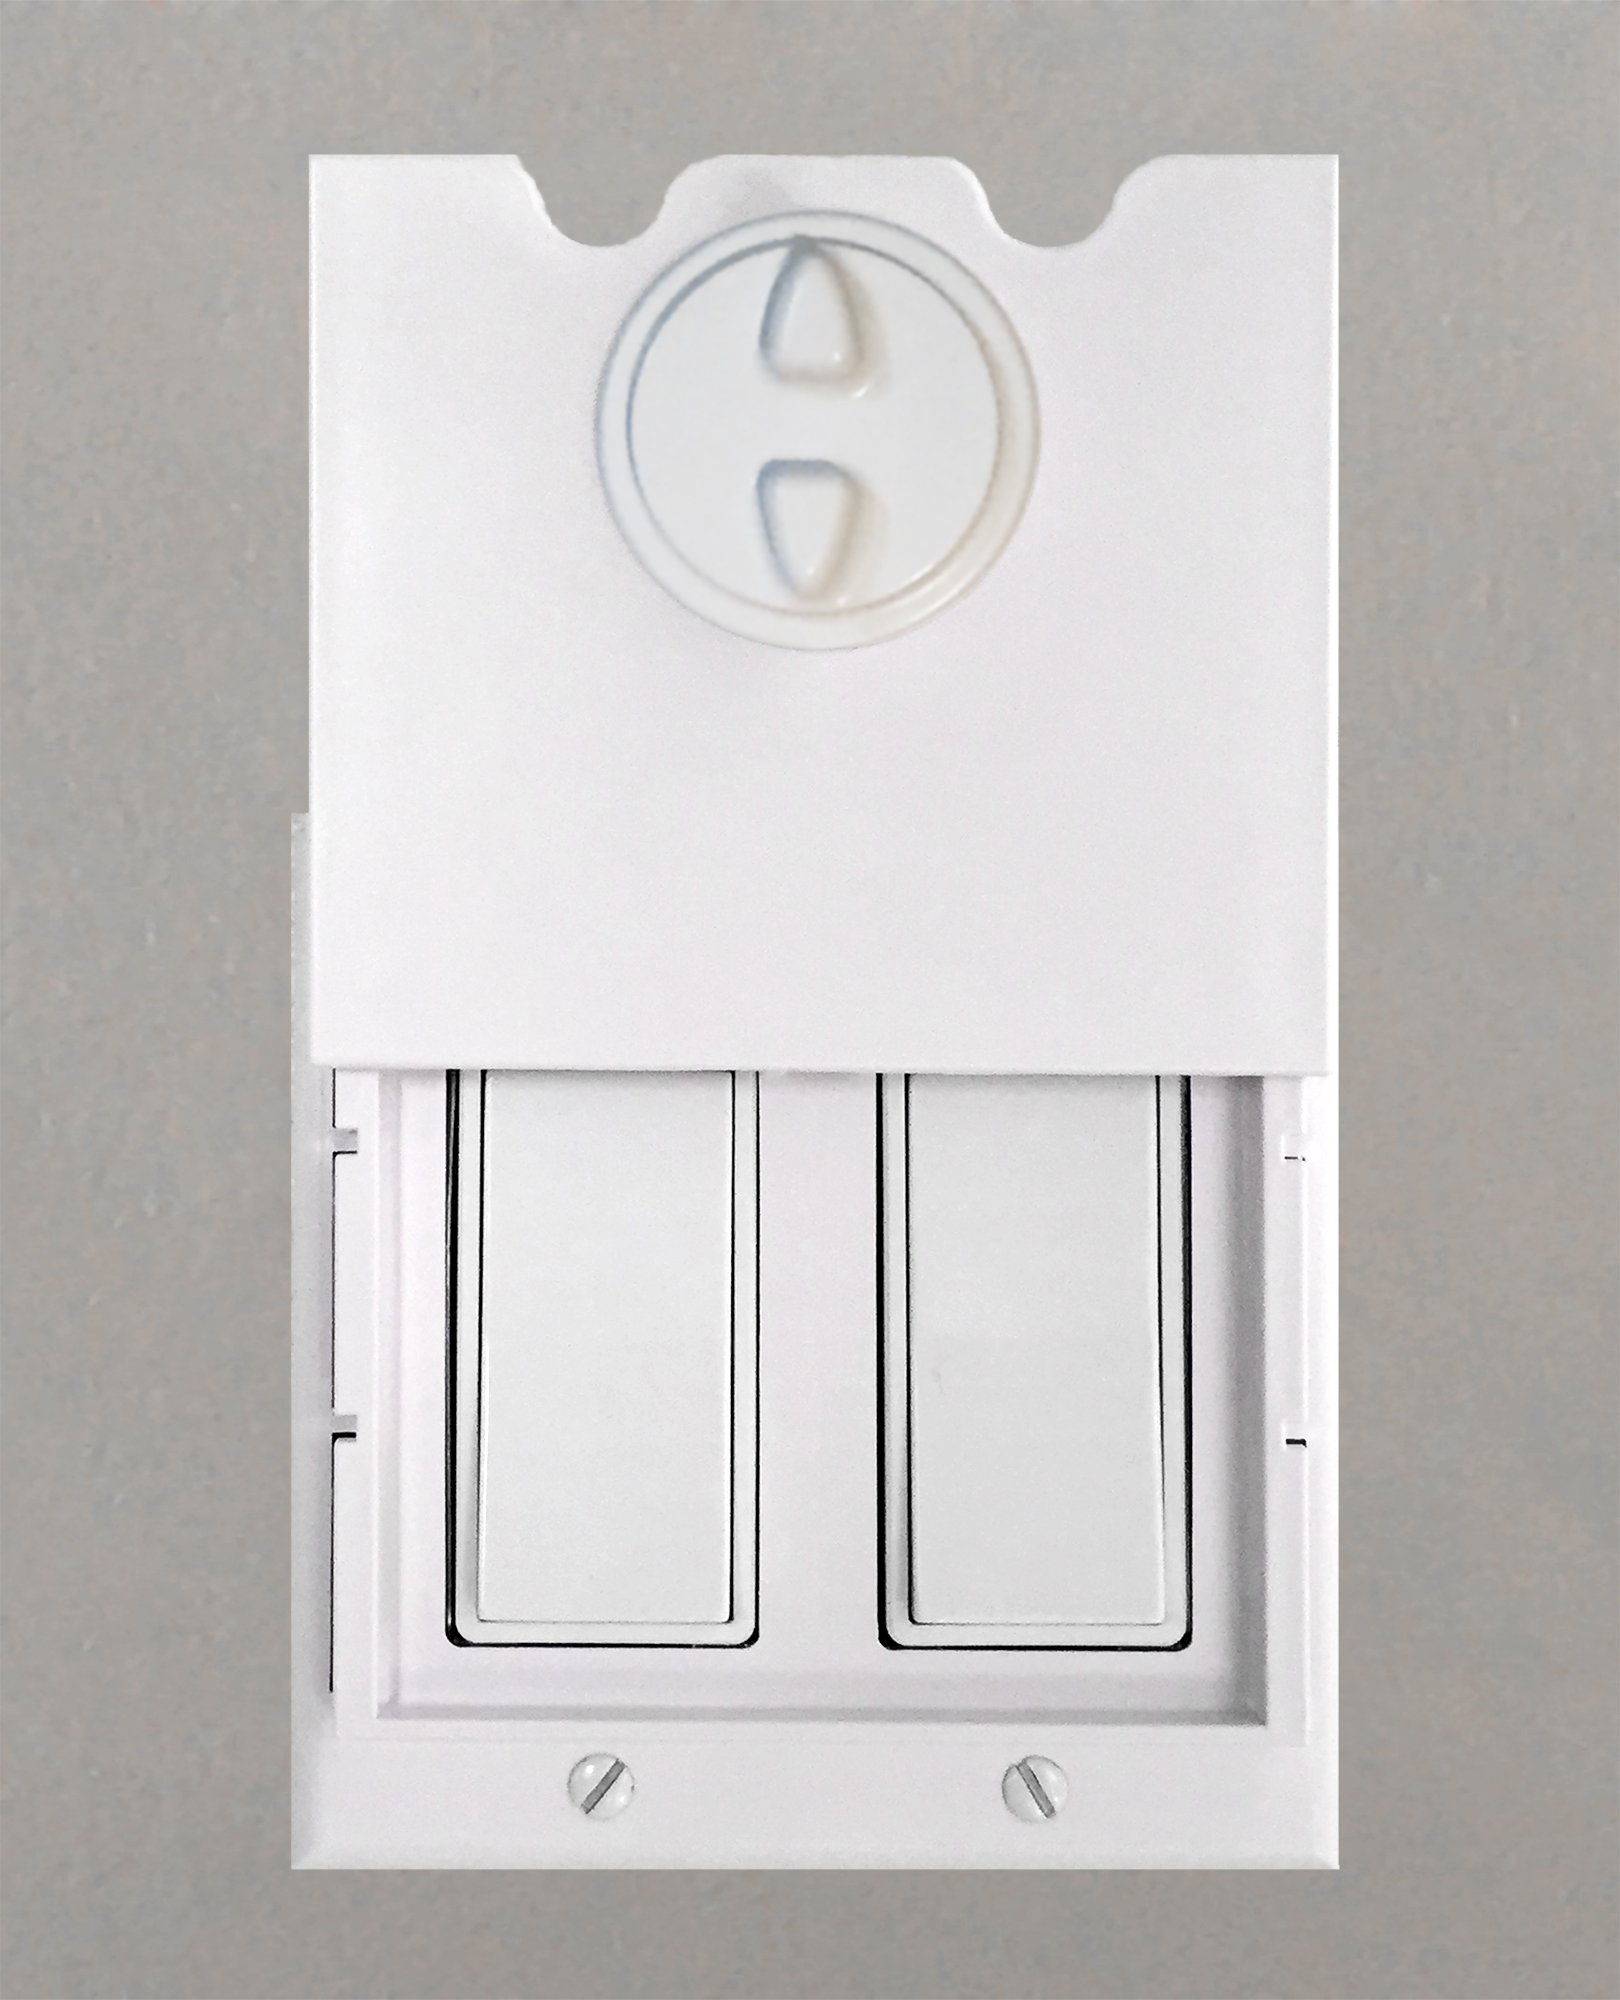 HomeStar Safety Light Switch Guard and Cover (for Double Rocker switches) by DHT Ventures